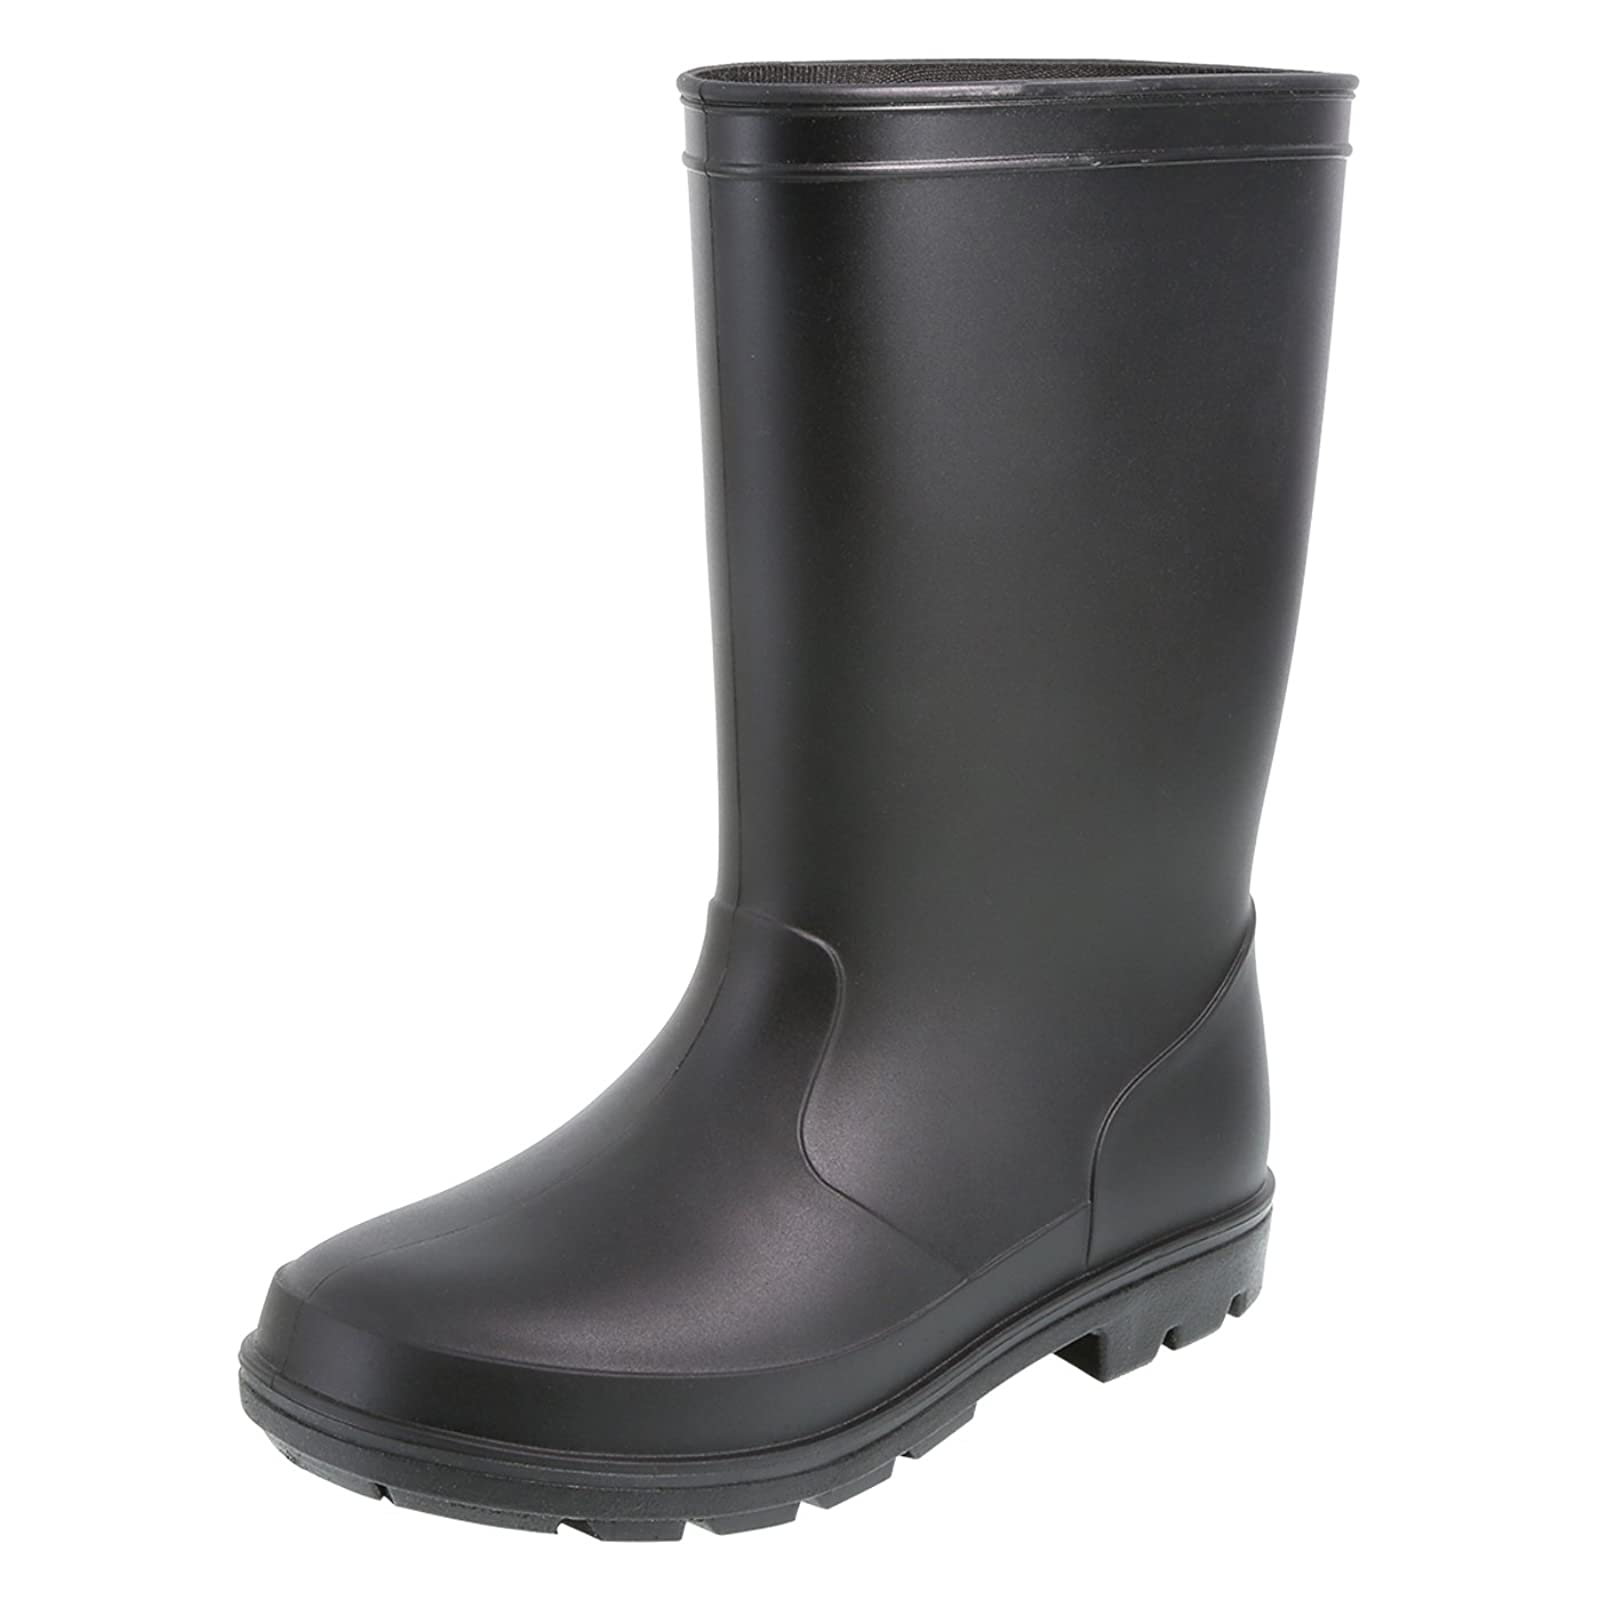 Rugged Outback Black Kids' Solid Rain Boots 174112010 - 4